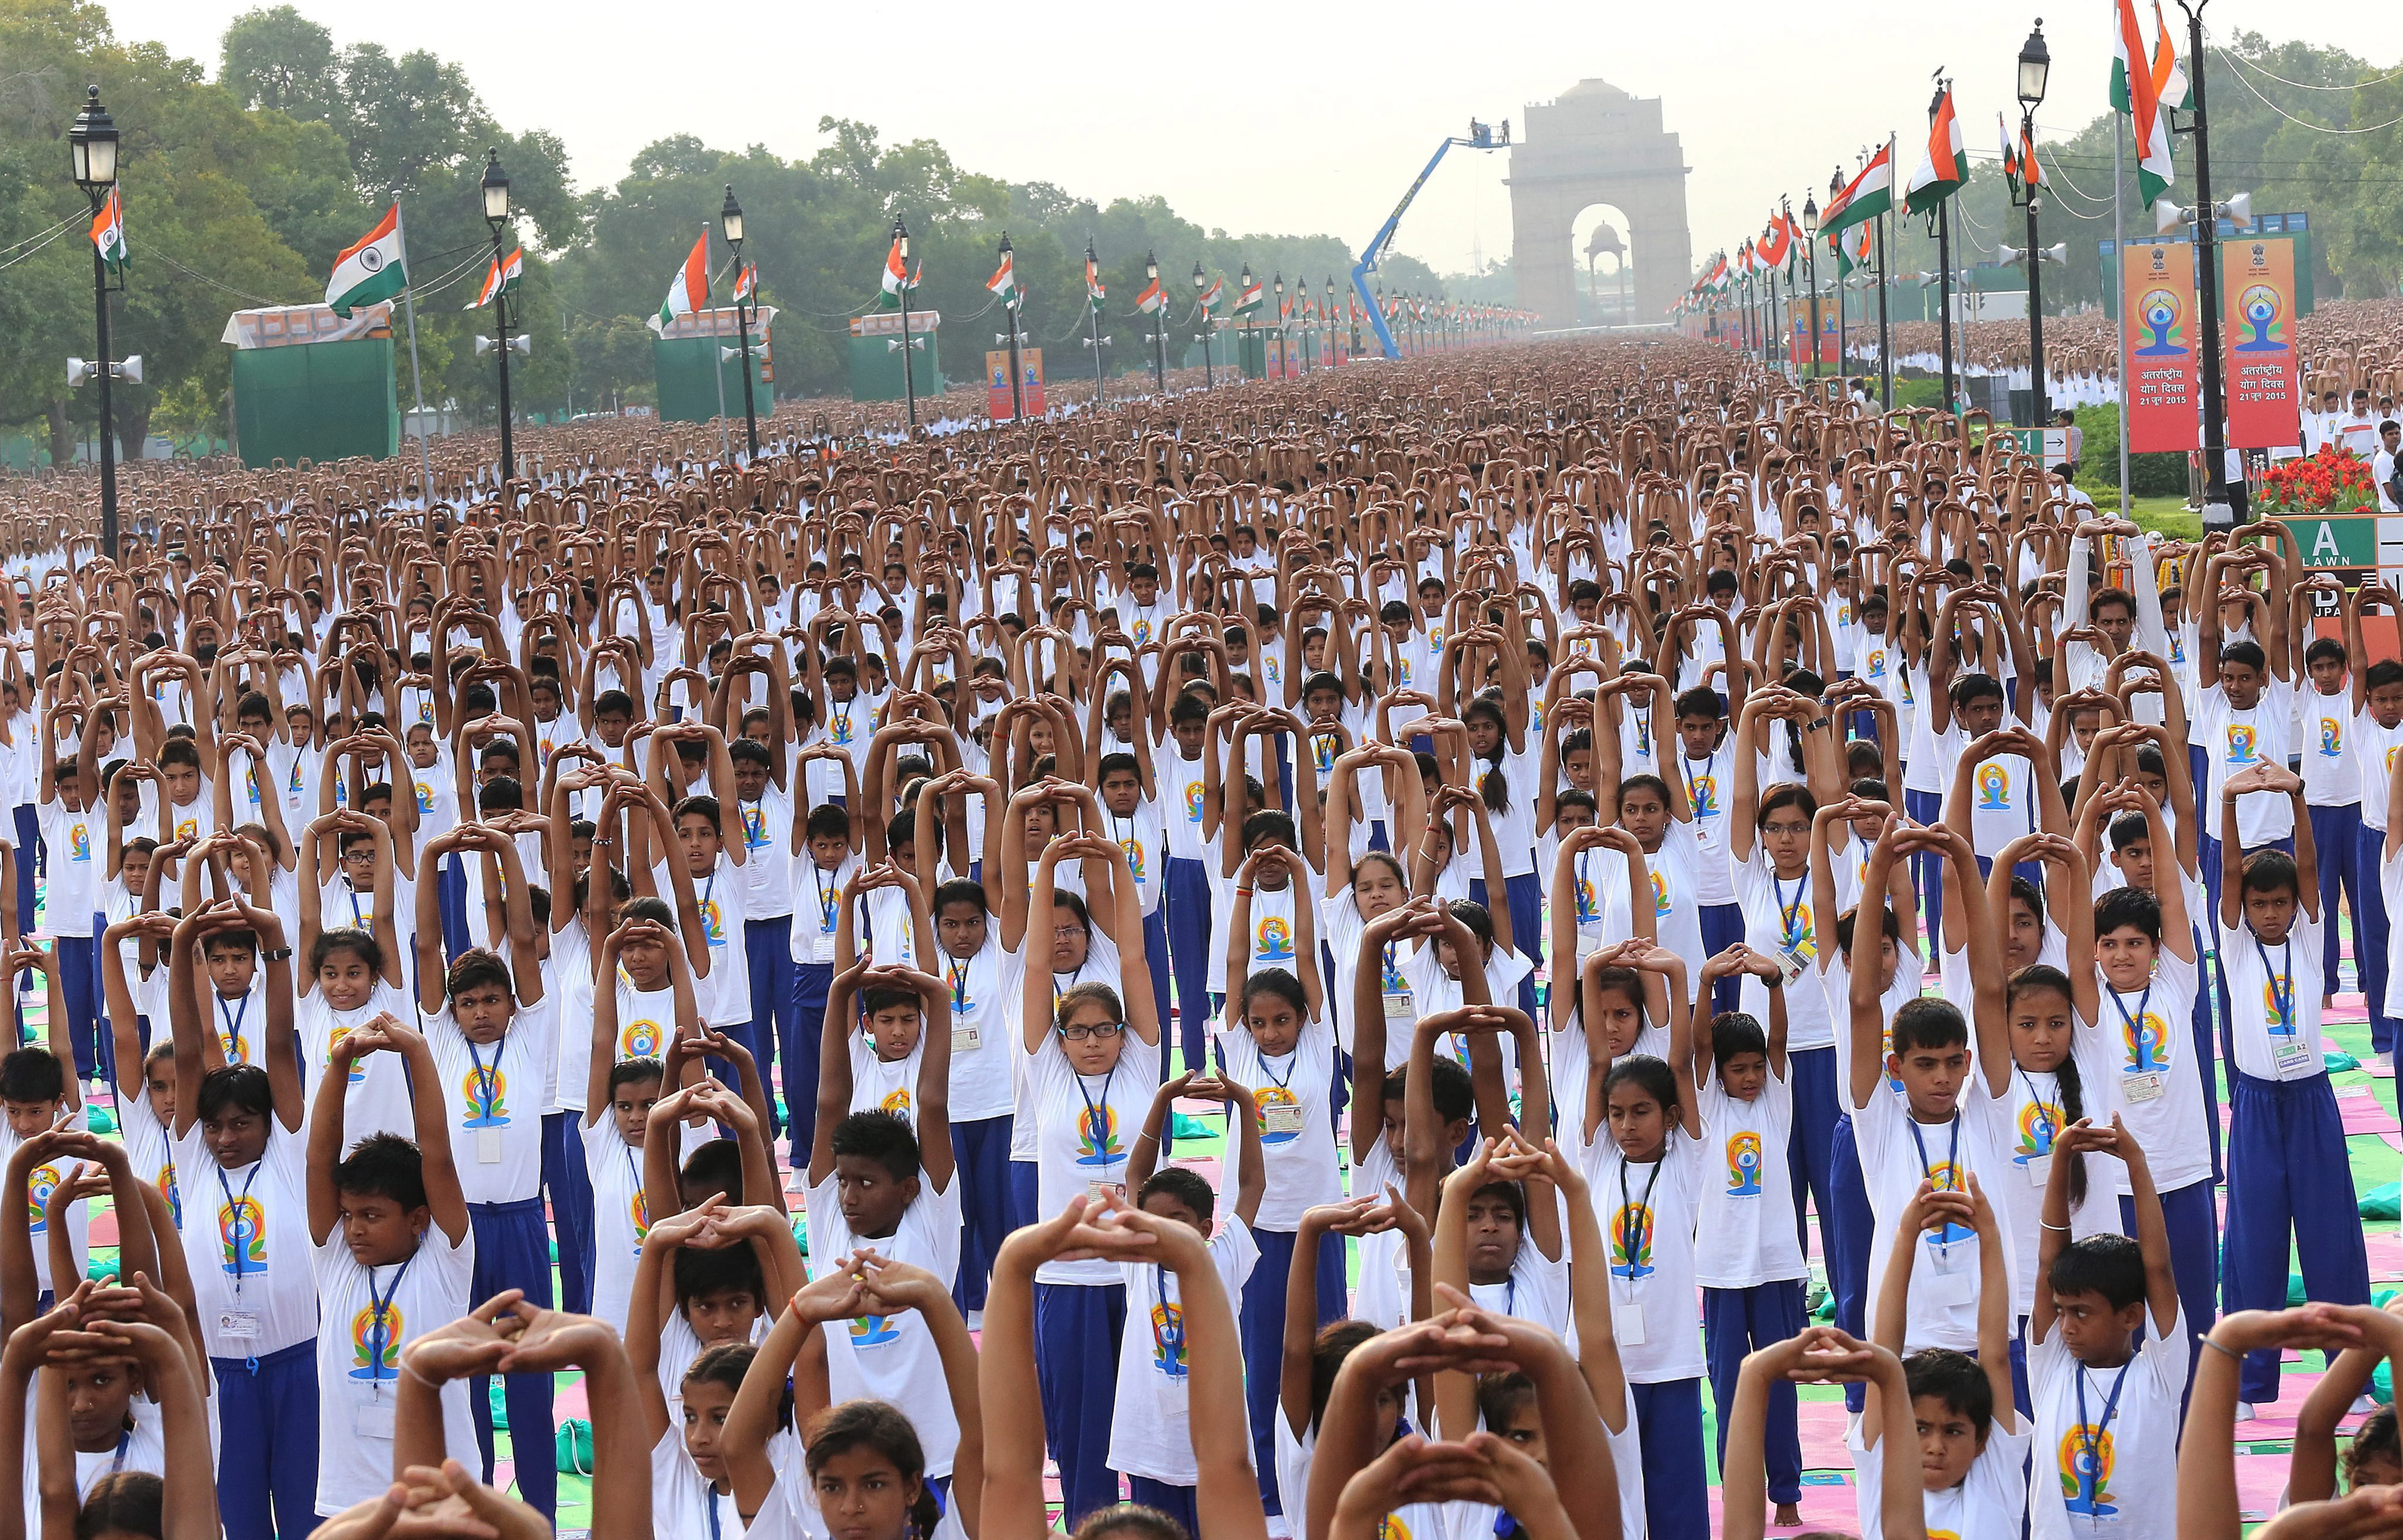 Thousands of participants perform yoga yoga to mark the international Day of Yoga, at Rajpath, a boulevard in New Delhi, on June 21, 2015.